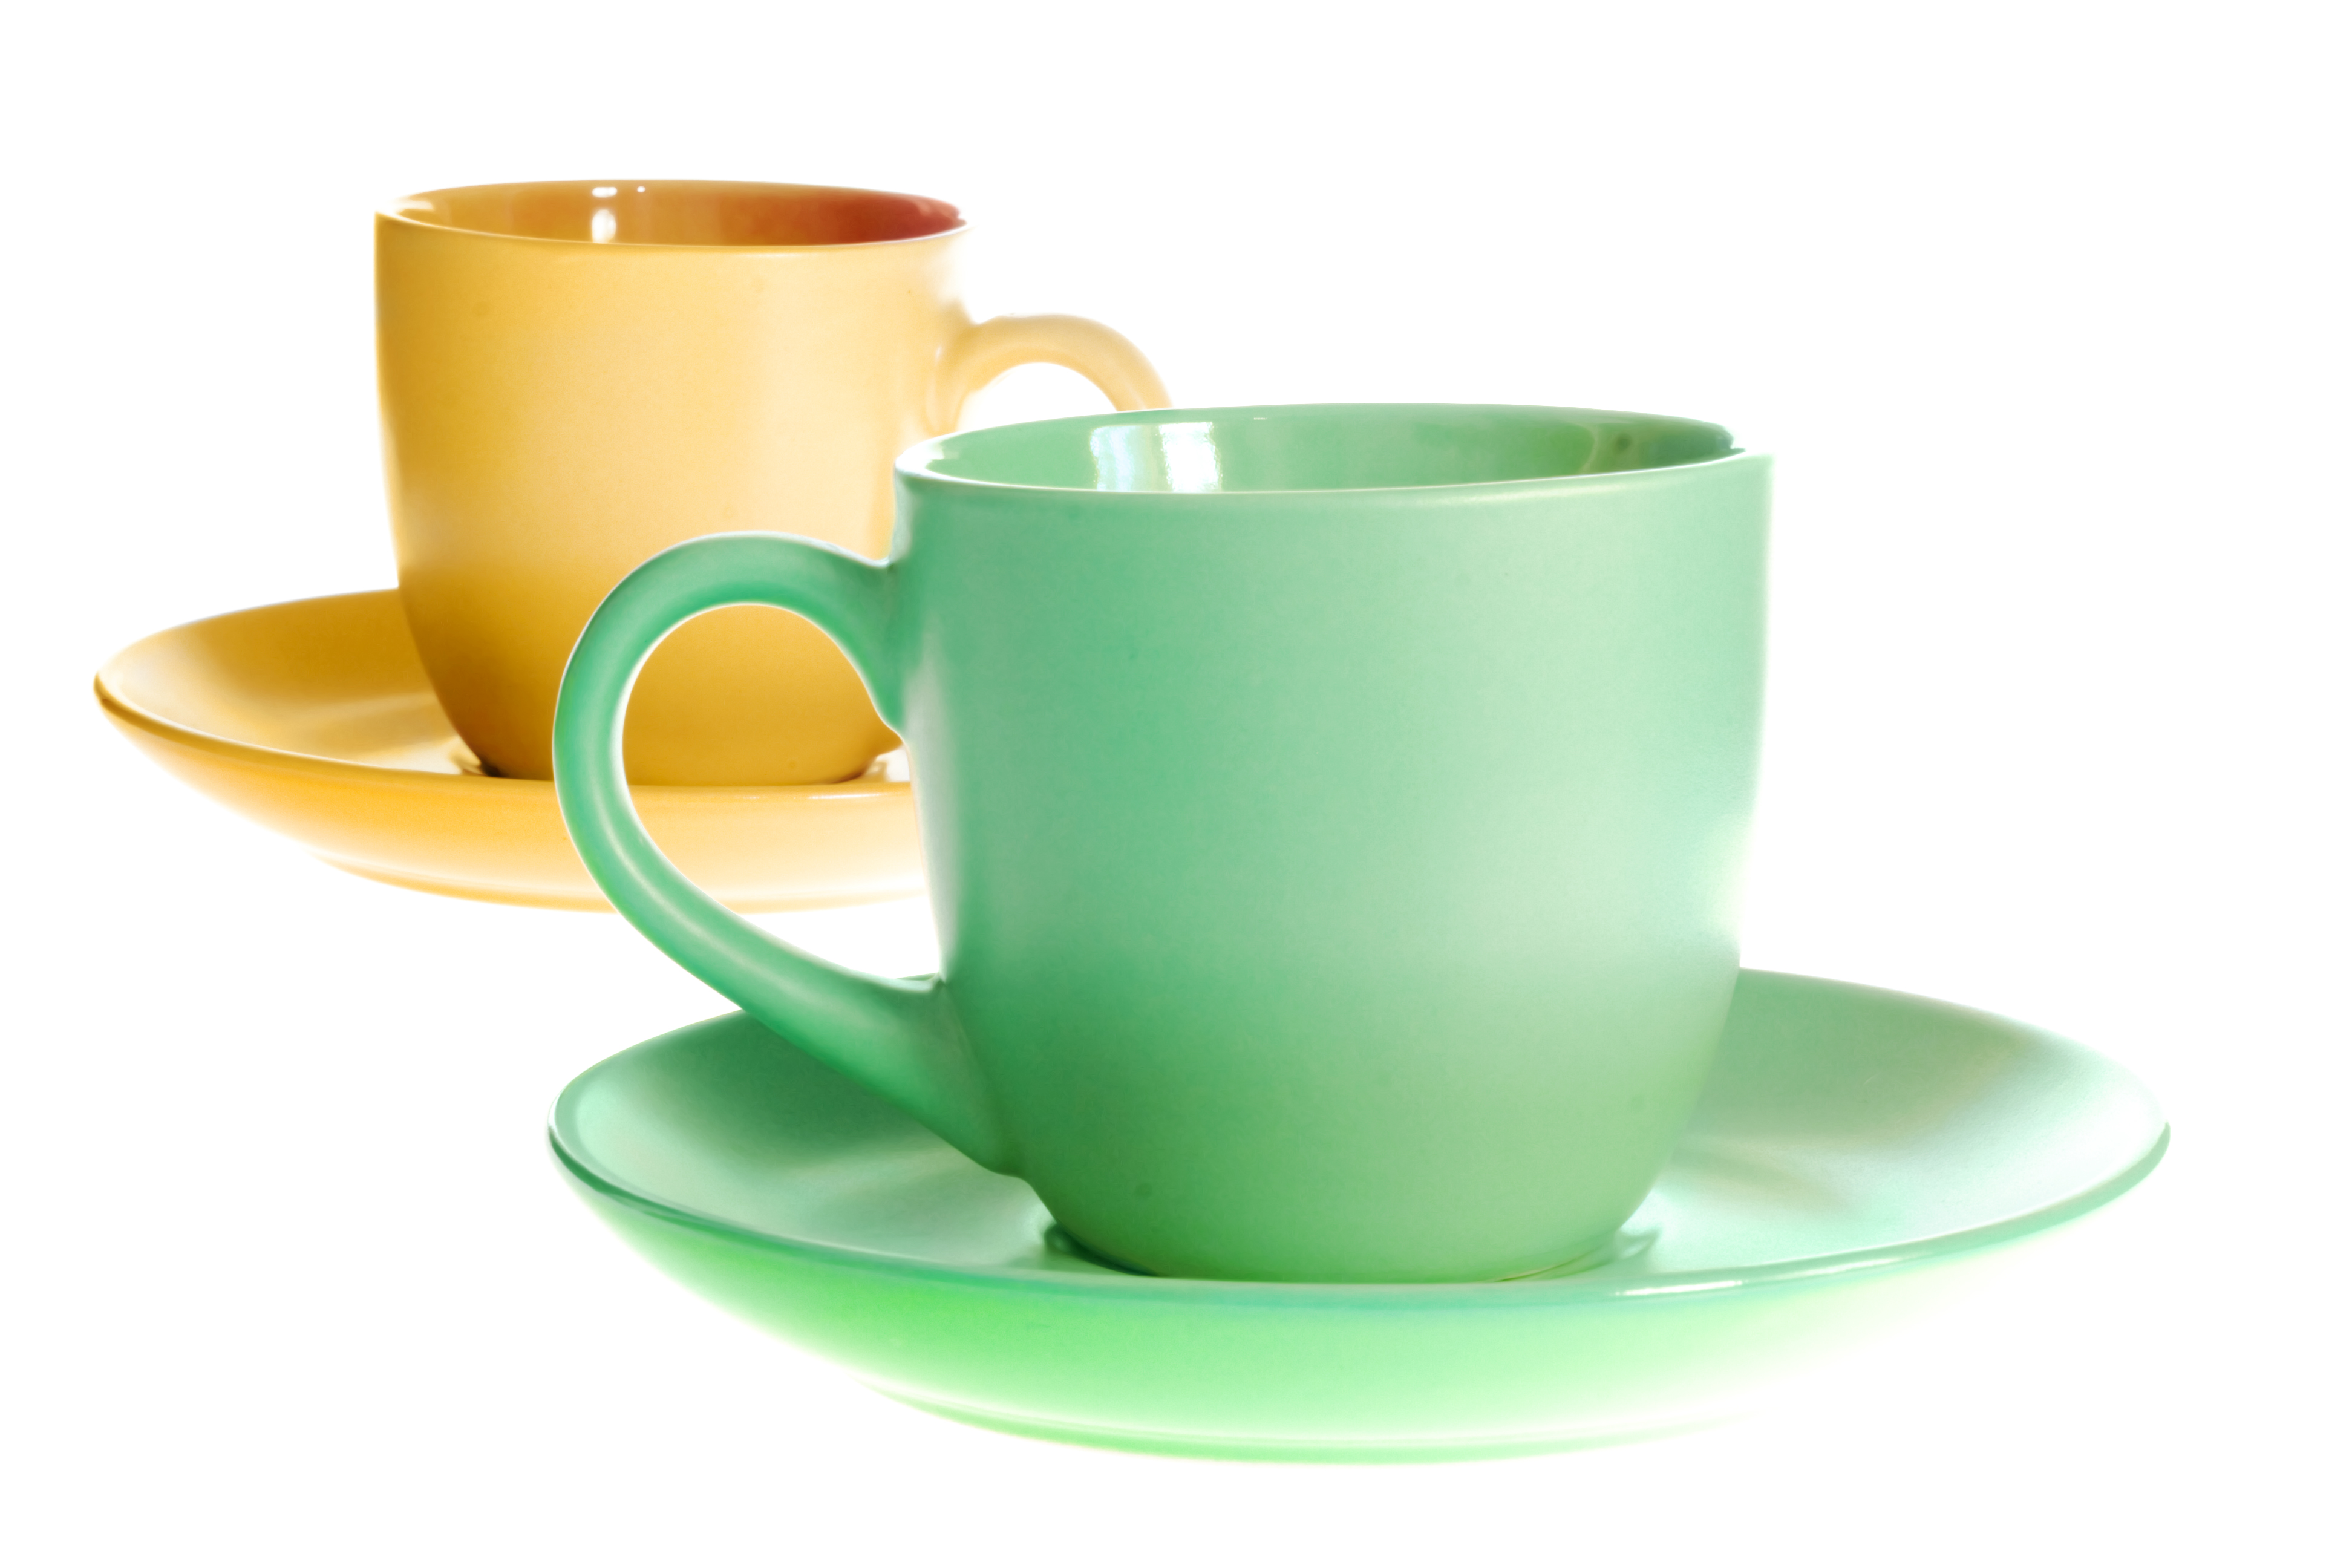 Green and yellow cups, Beverage, Heap, White, Tea, HQ Photo